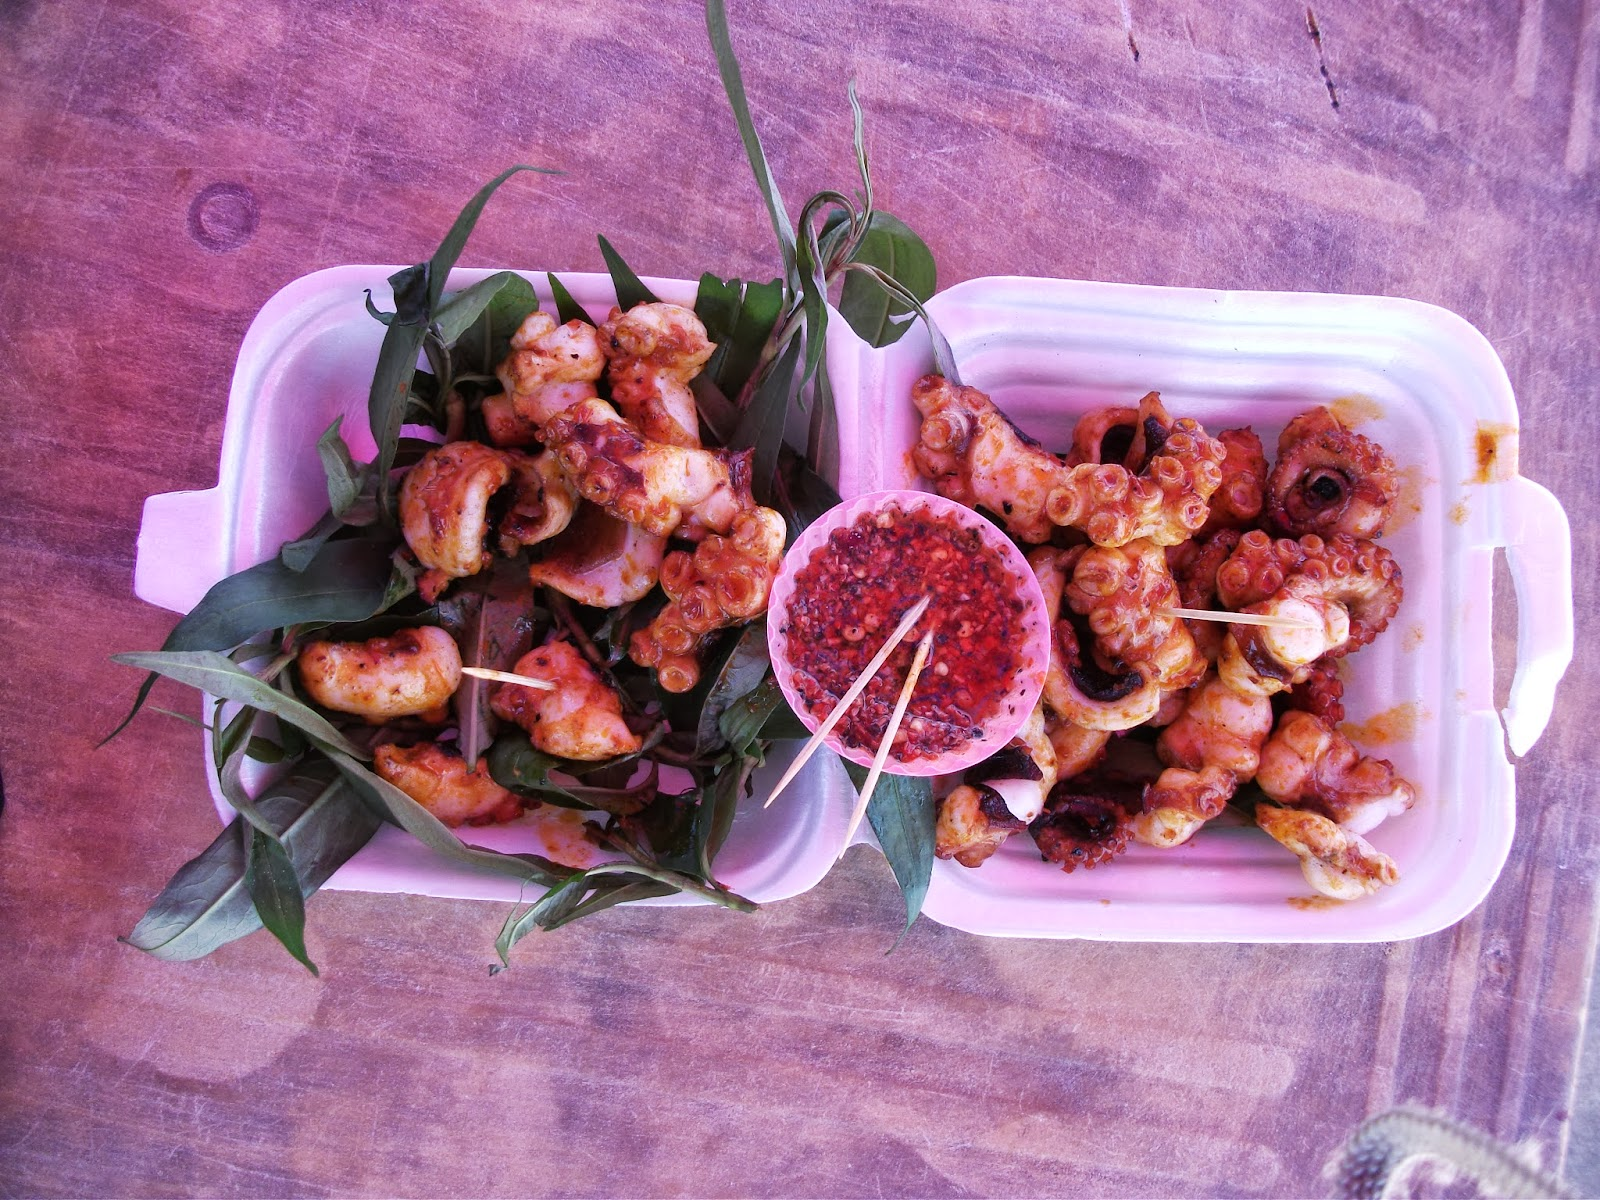 eating octopus with chilly sauce in vung tau, vietnam